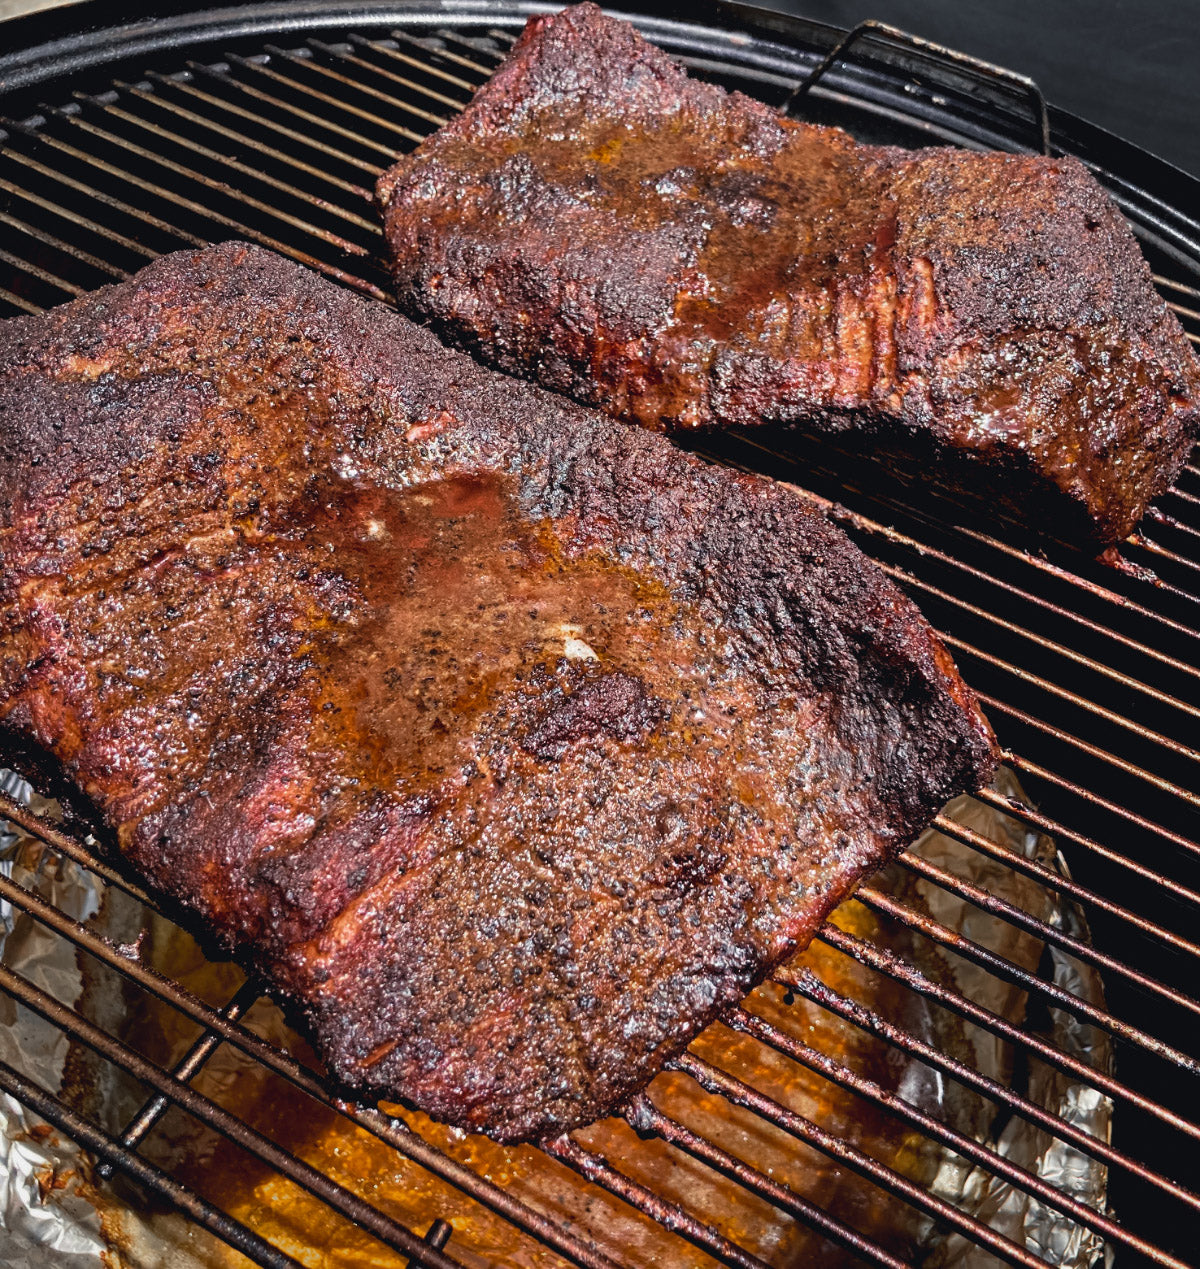 Photo of fully cooked briskets on a smoker